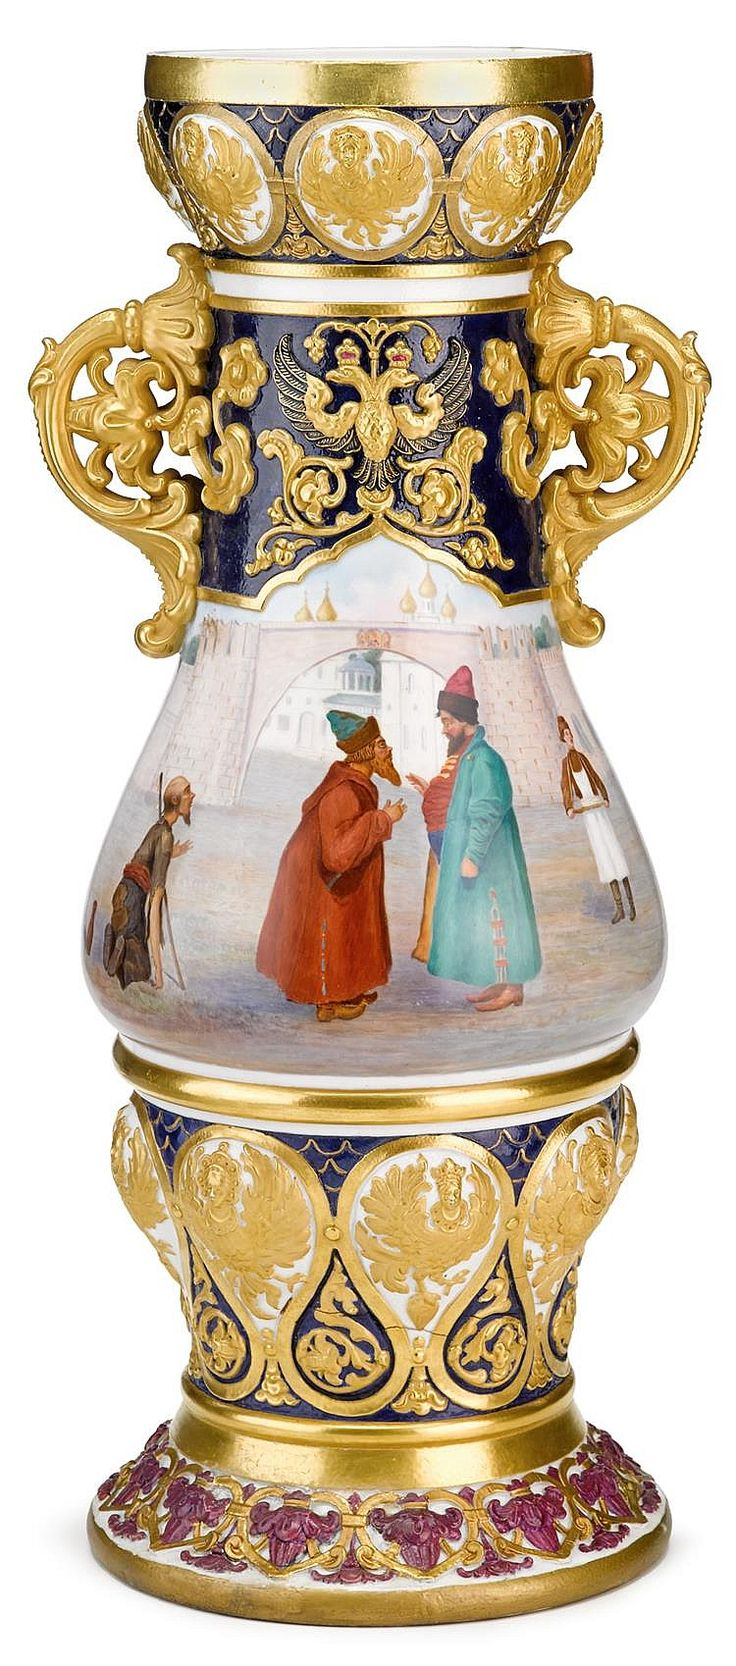 Russian Imperial porcelain vase st petersburg, period of nicolas i circa 1840  Baluster form, the finely gilt scroll handles to neck flanking the relief molded Imperial eagle on either side, the body painted on one side to show a boyar at the entrance to a monastery conversing, as a beggar and attendant look on, the rim and lower body with a series of applied harpie motifs interspersed with raised gilt floral scrolls, the whole raised on circular foot, blue cypher mark to bottom.  H: 26 in.